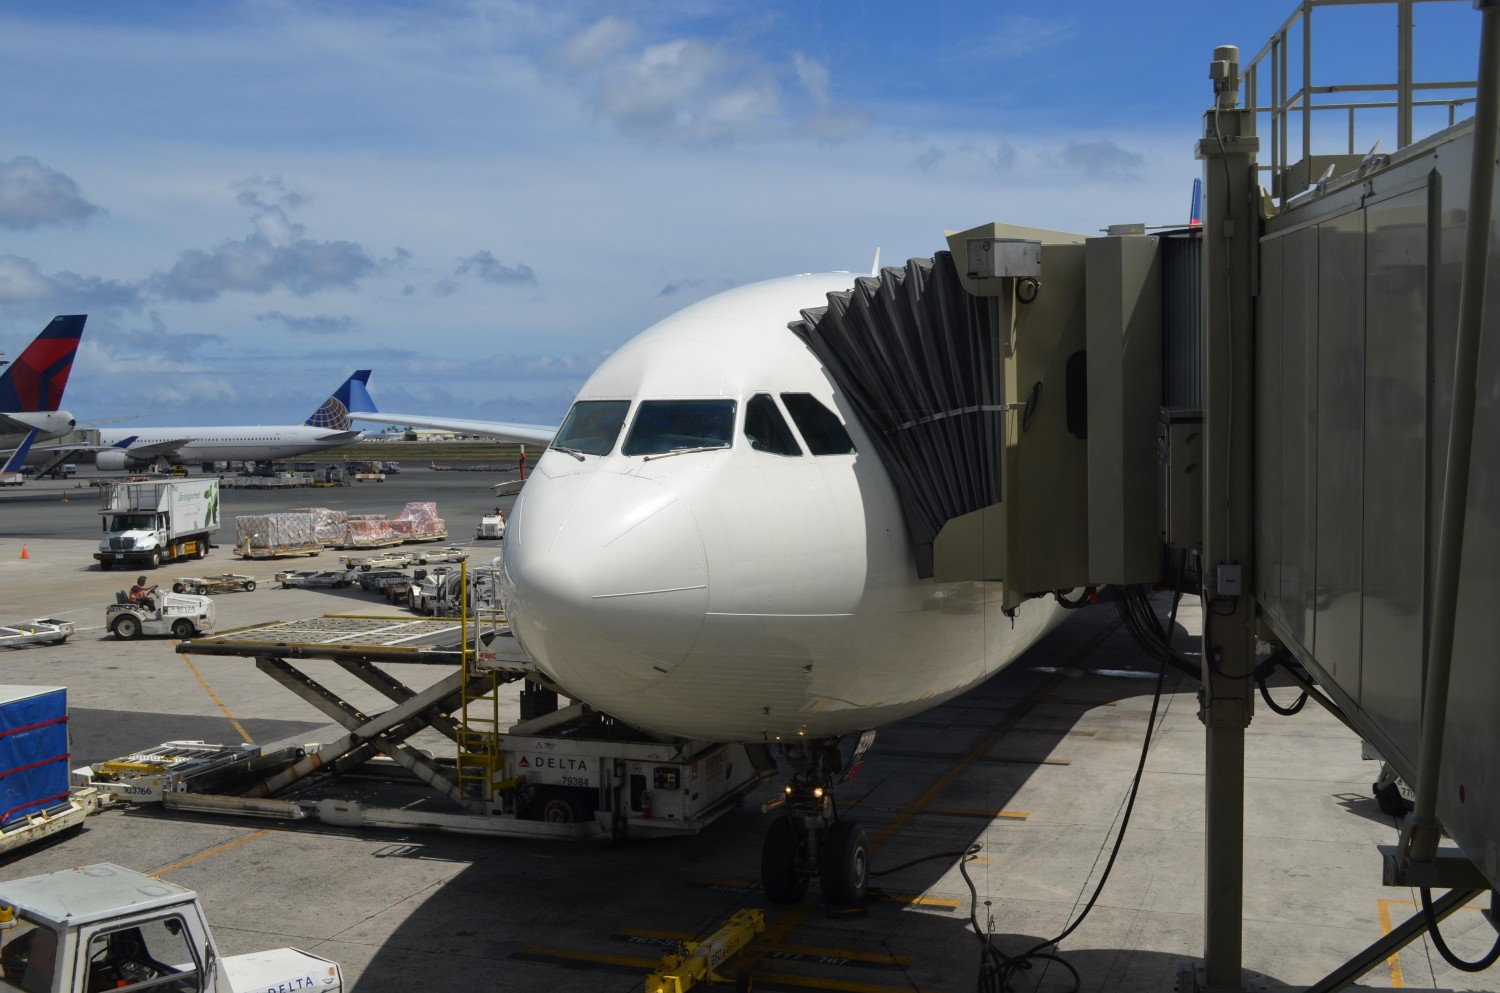 At The Gate In HNL